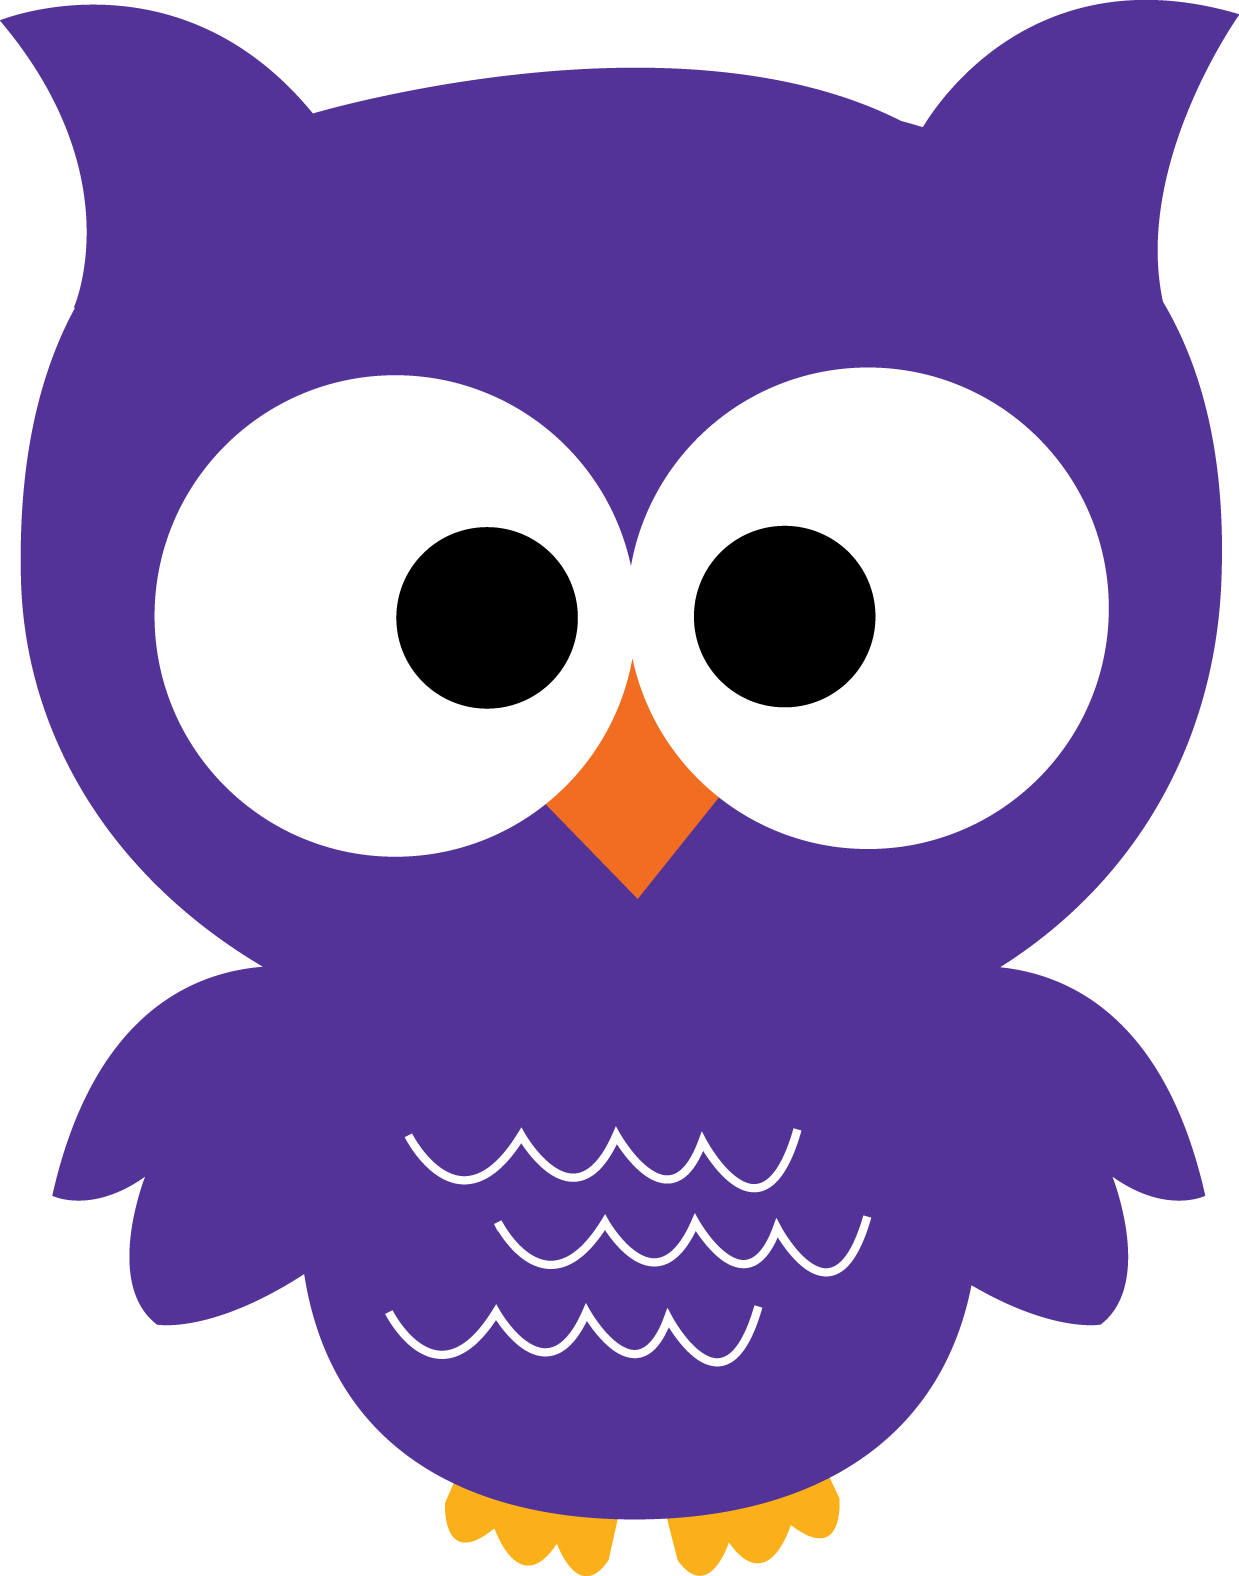 Free Printable Cute Owl Clip Art Png Download Full Size Clipart 2581261 Pinclipart